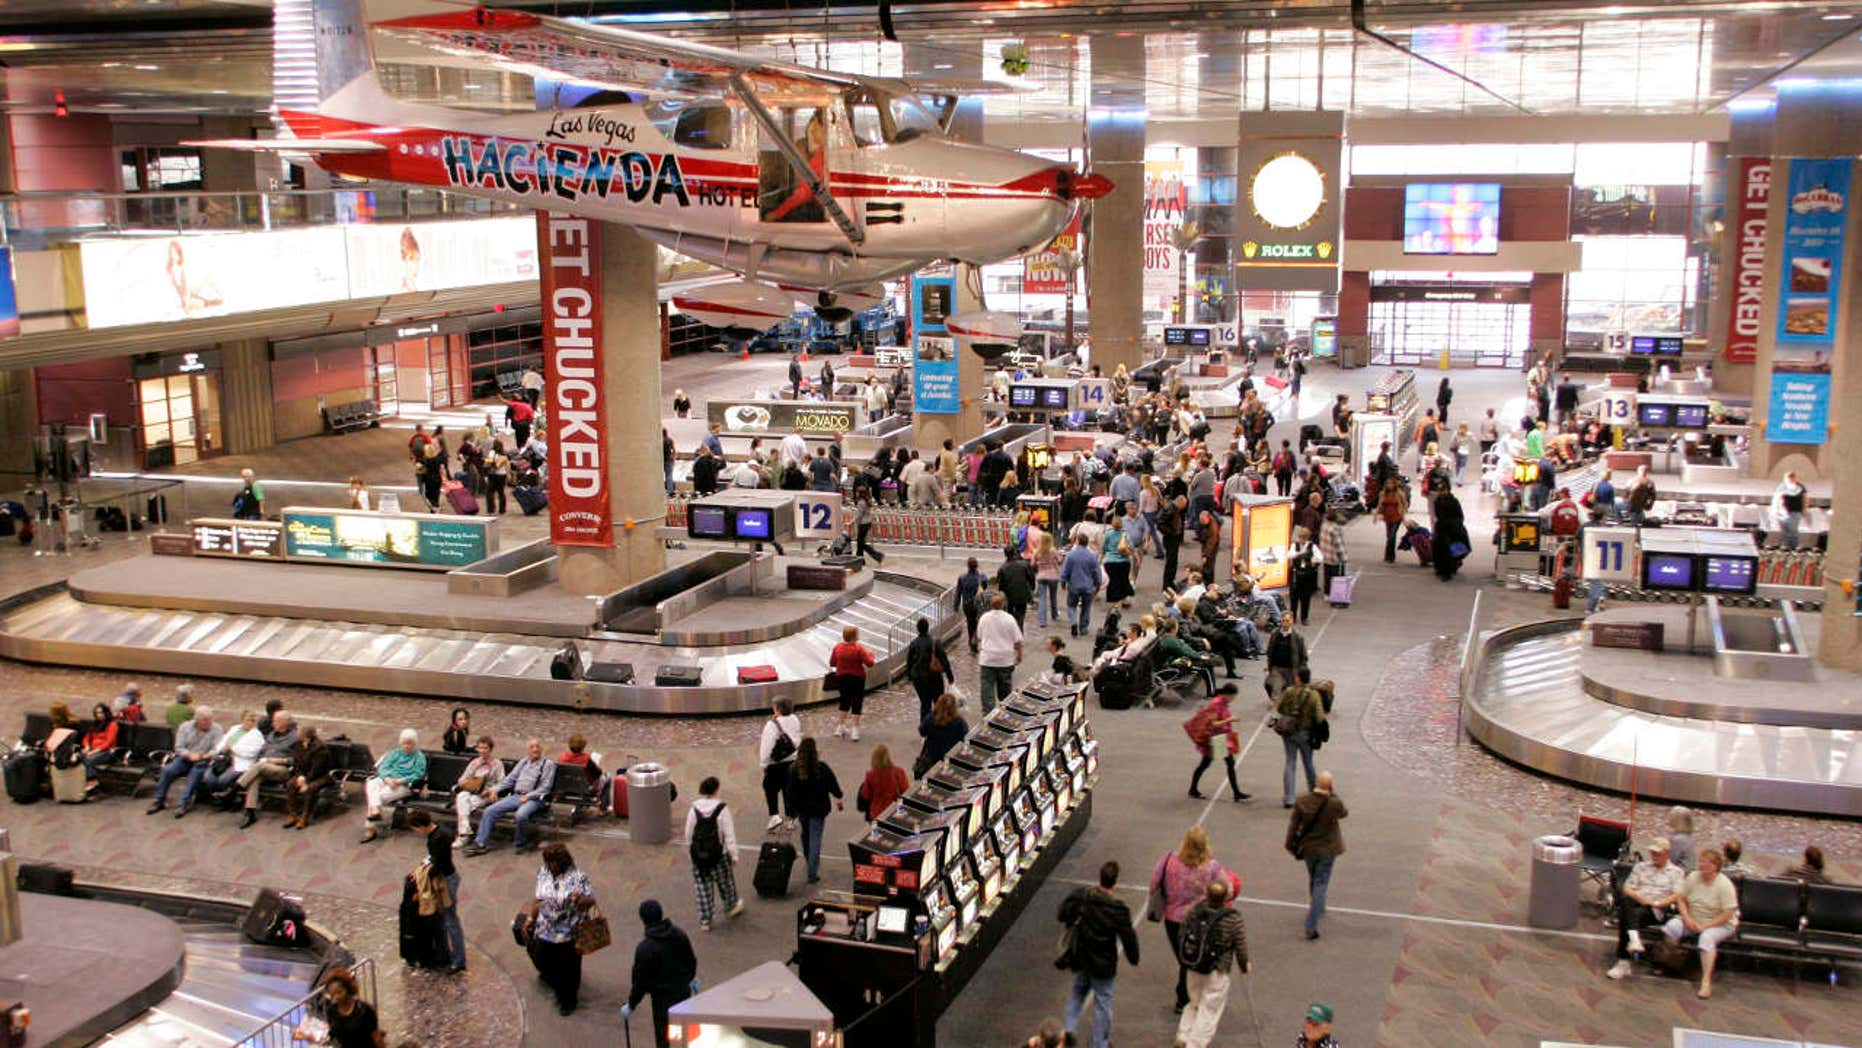 A view is seen of the baggage pick-up area at McCarran International Airport in Las Vegas